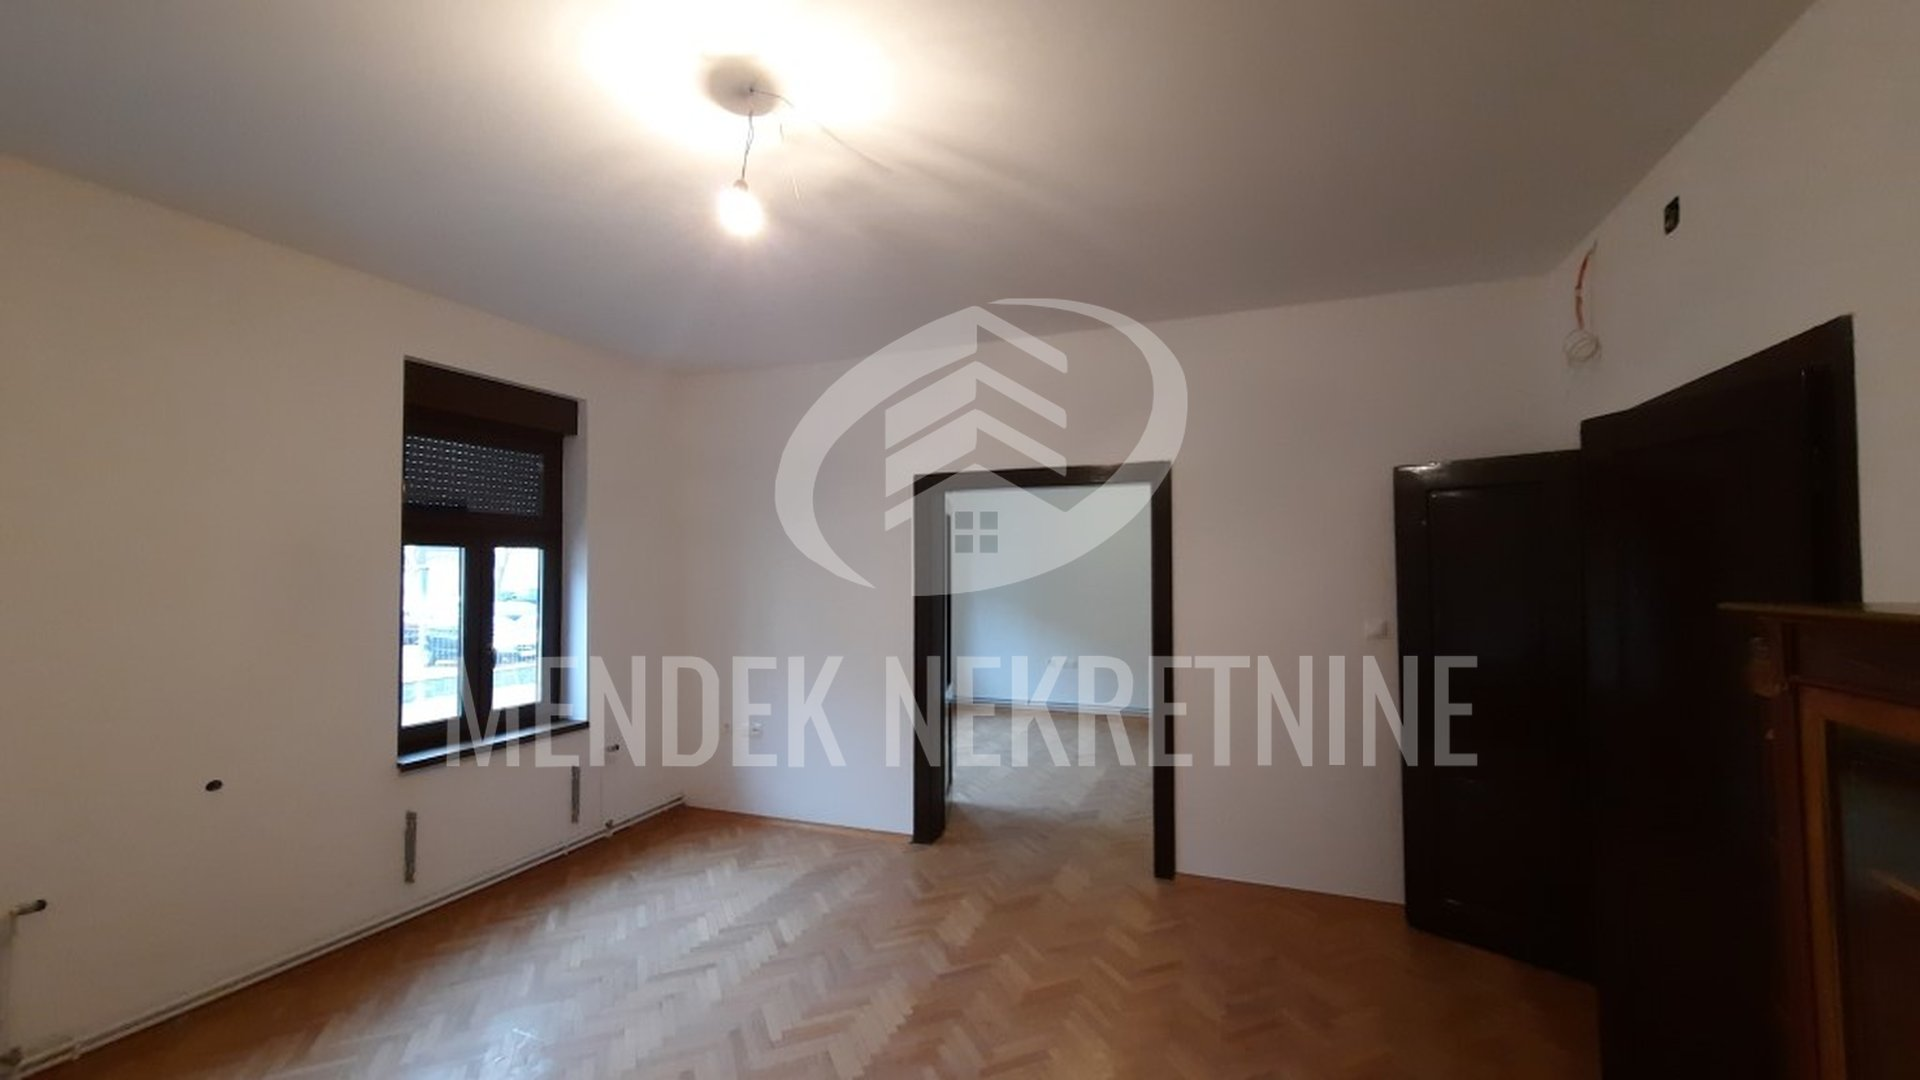 Commercial Property, 150 m2, For Rent, Varaždin - Centar